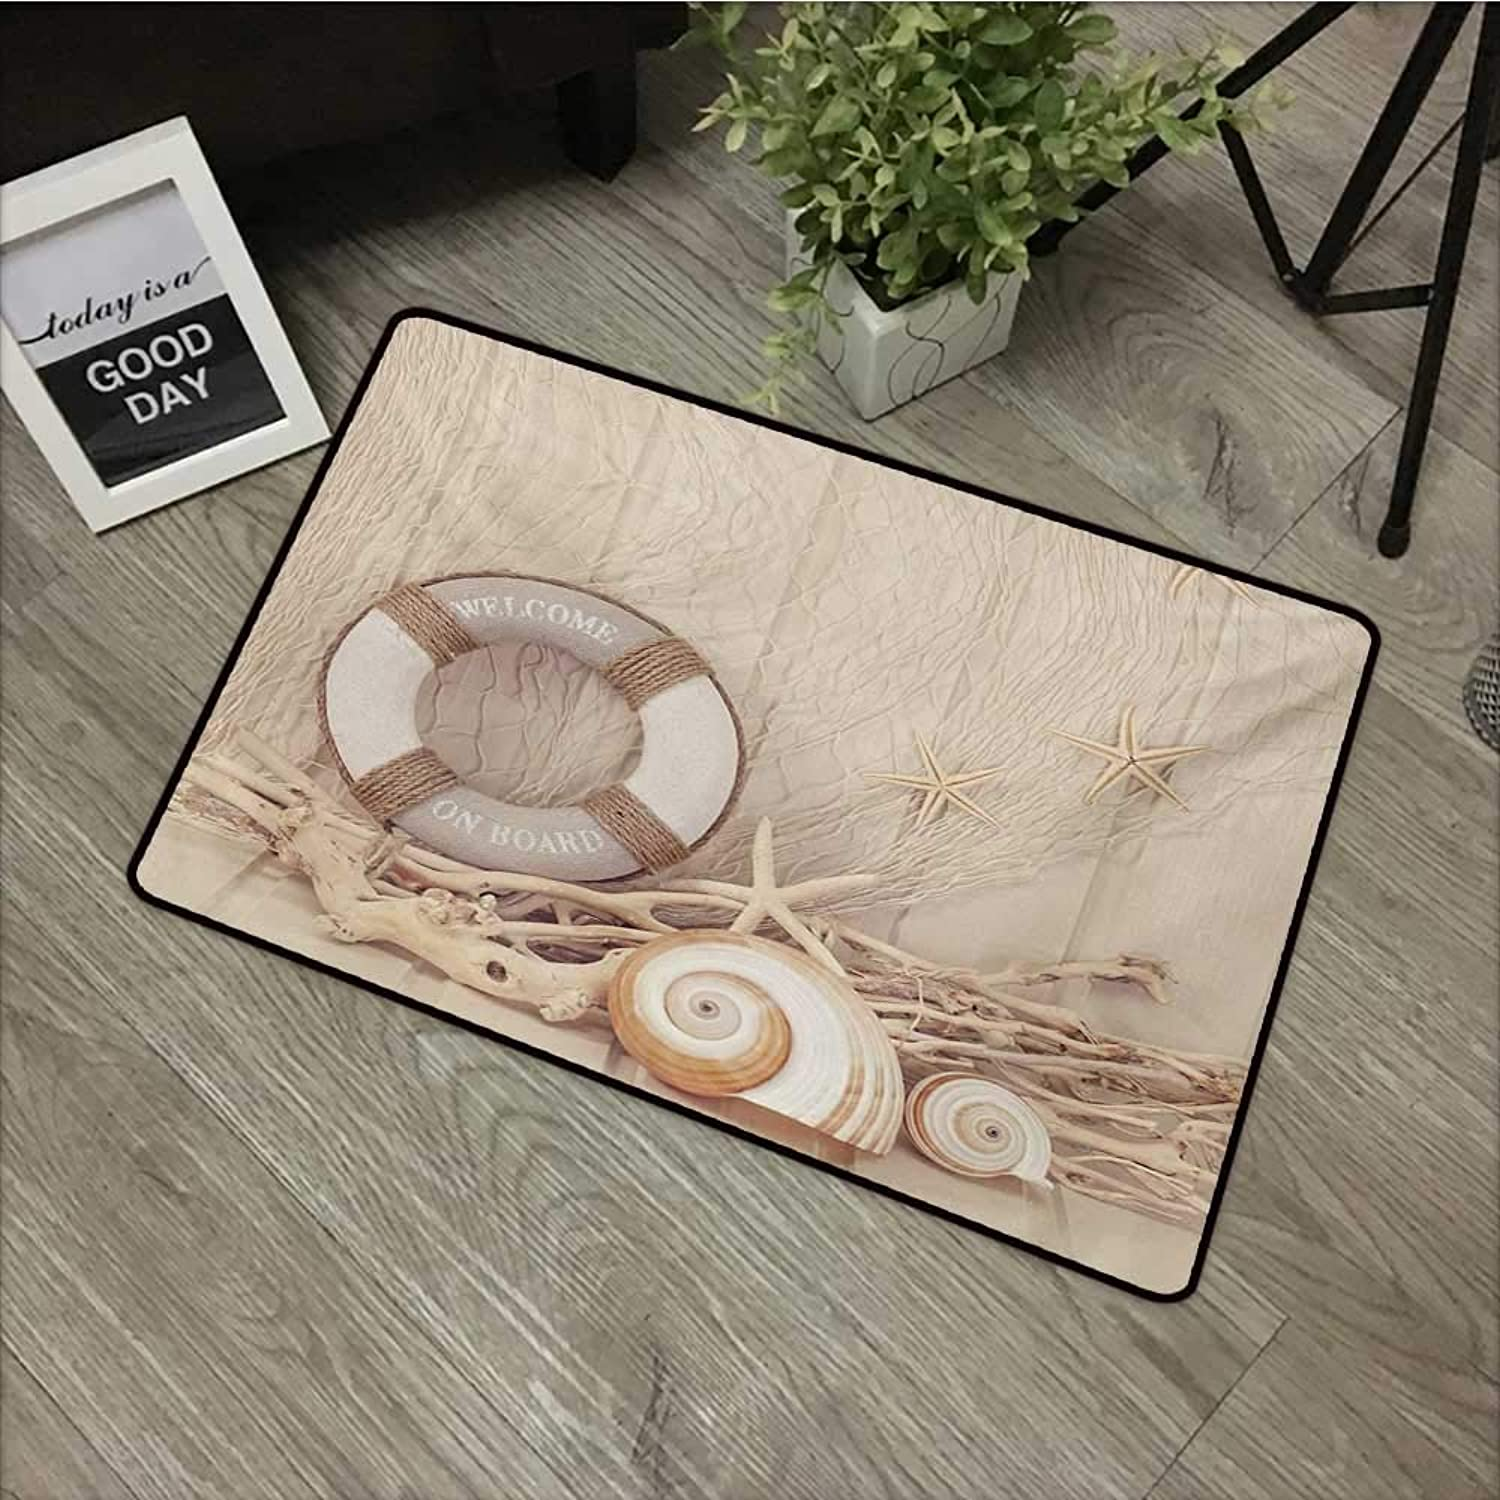 Floor mat W35 x L59 INCH Coastal,Welcome On Board Life Buoy Wooden Sepia Fishnet Holiday Maritime Theme Print,Tan Beige White Non-Slip, with Non-Slip Backing,Non-Slip Door Mat Carpet